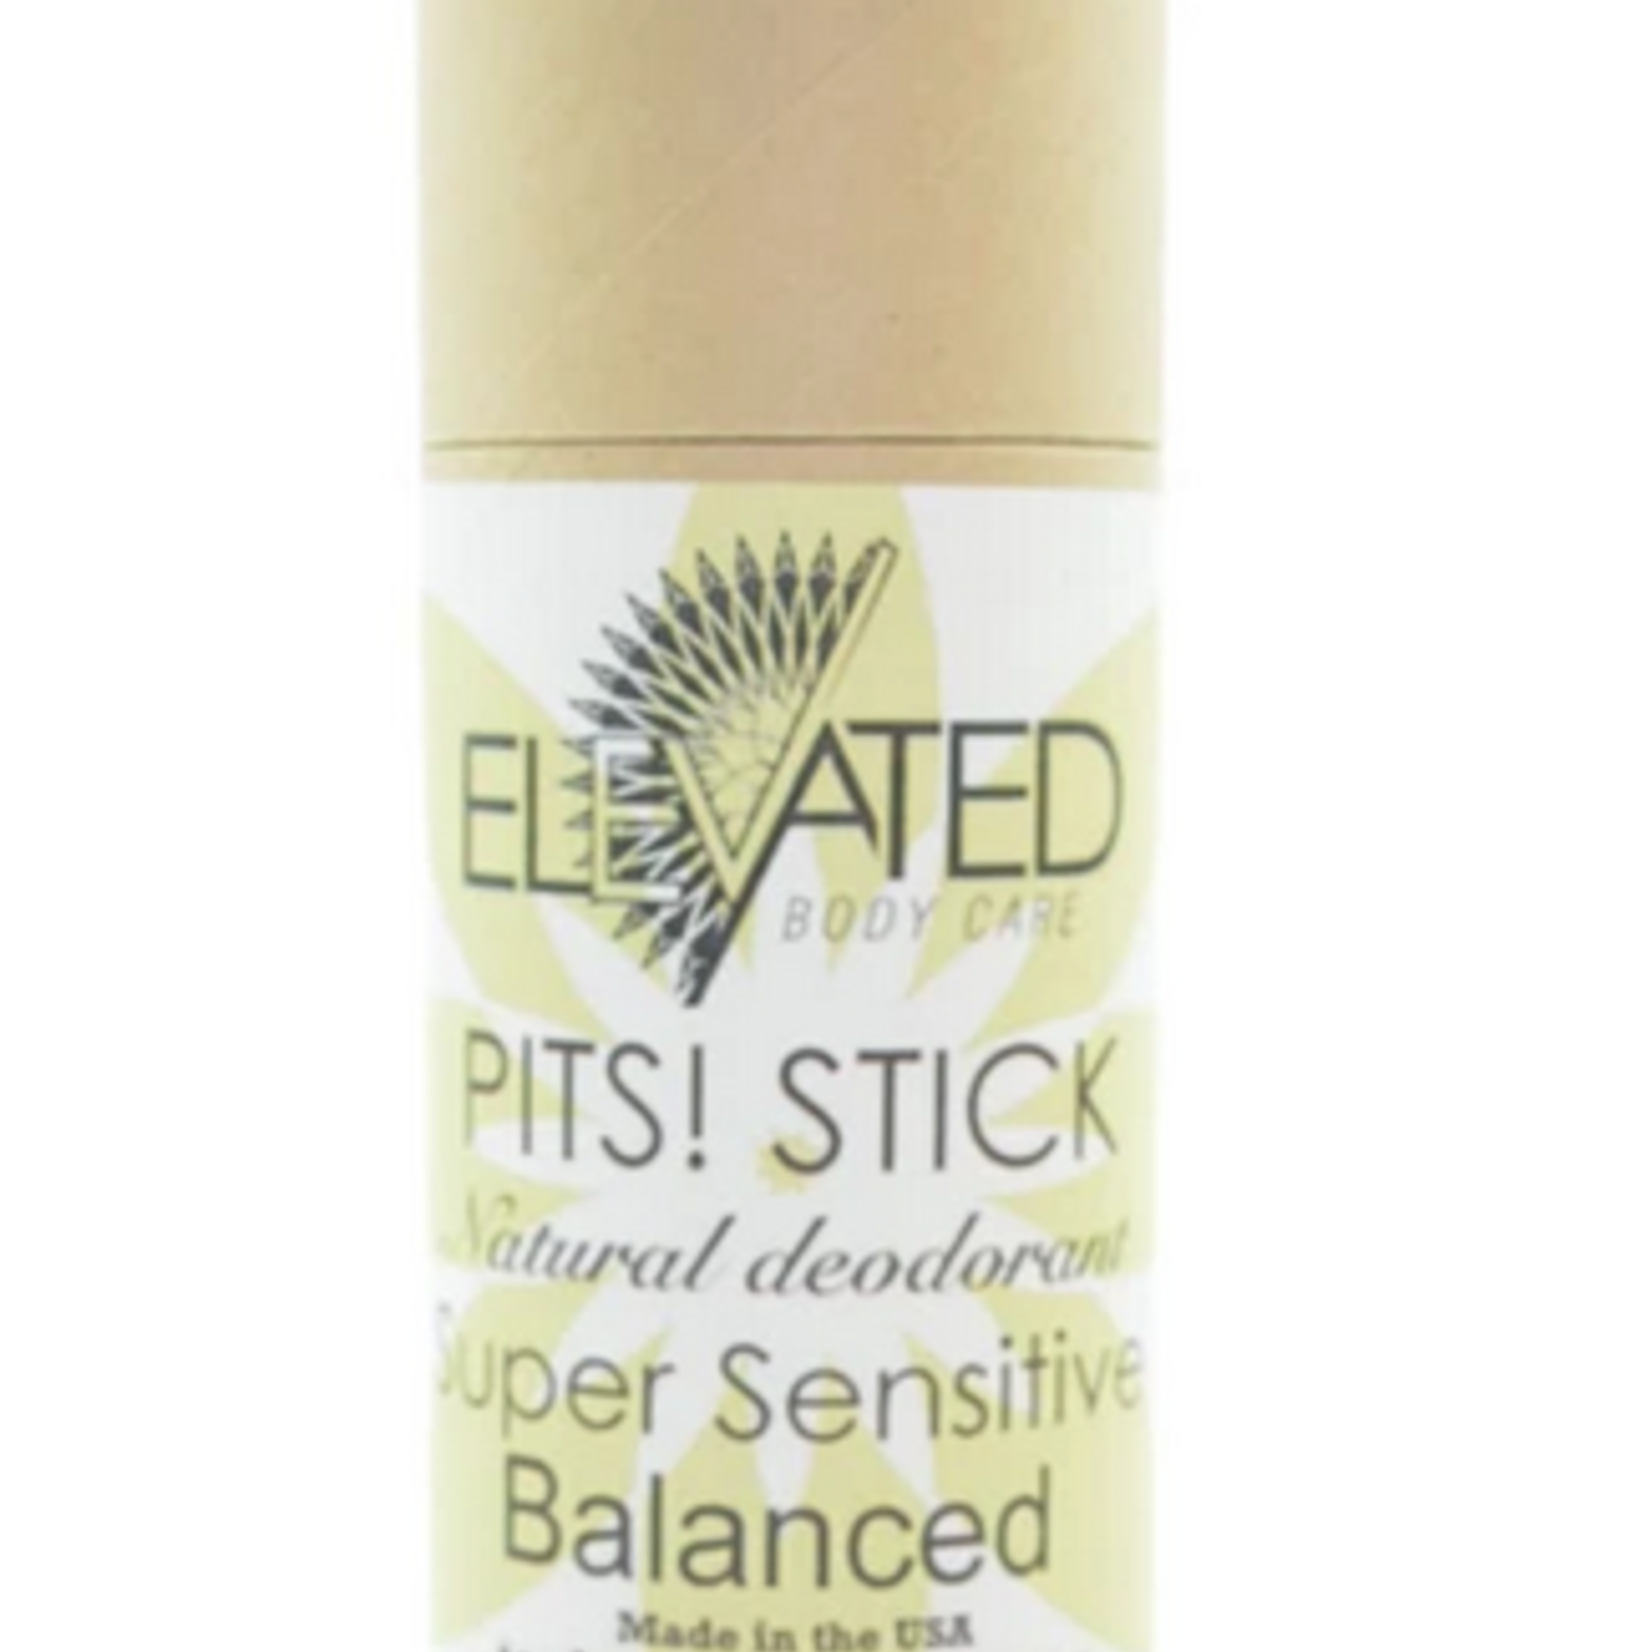 Elevated Pits! Stick - Sensitive